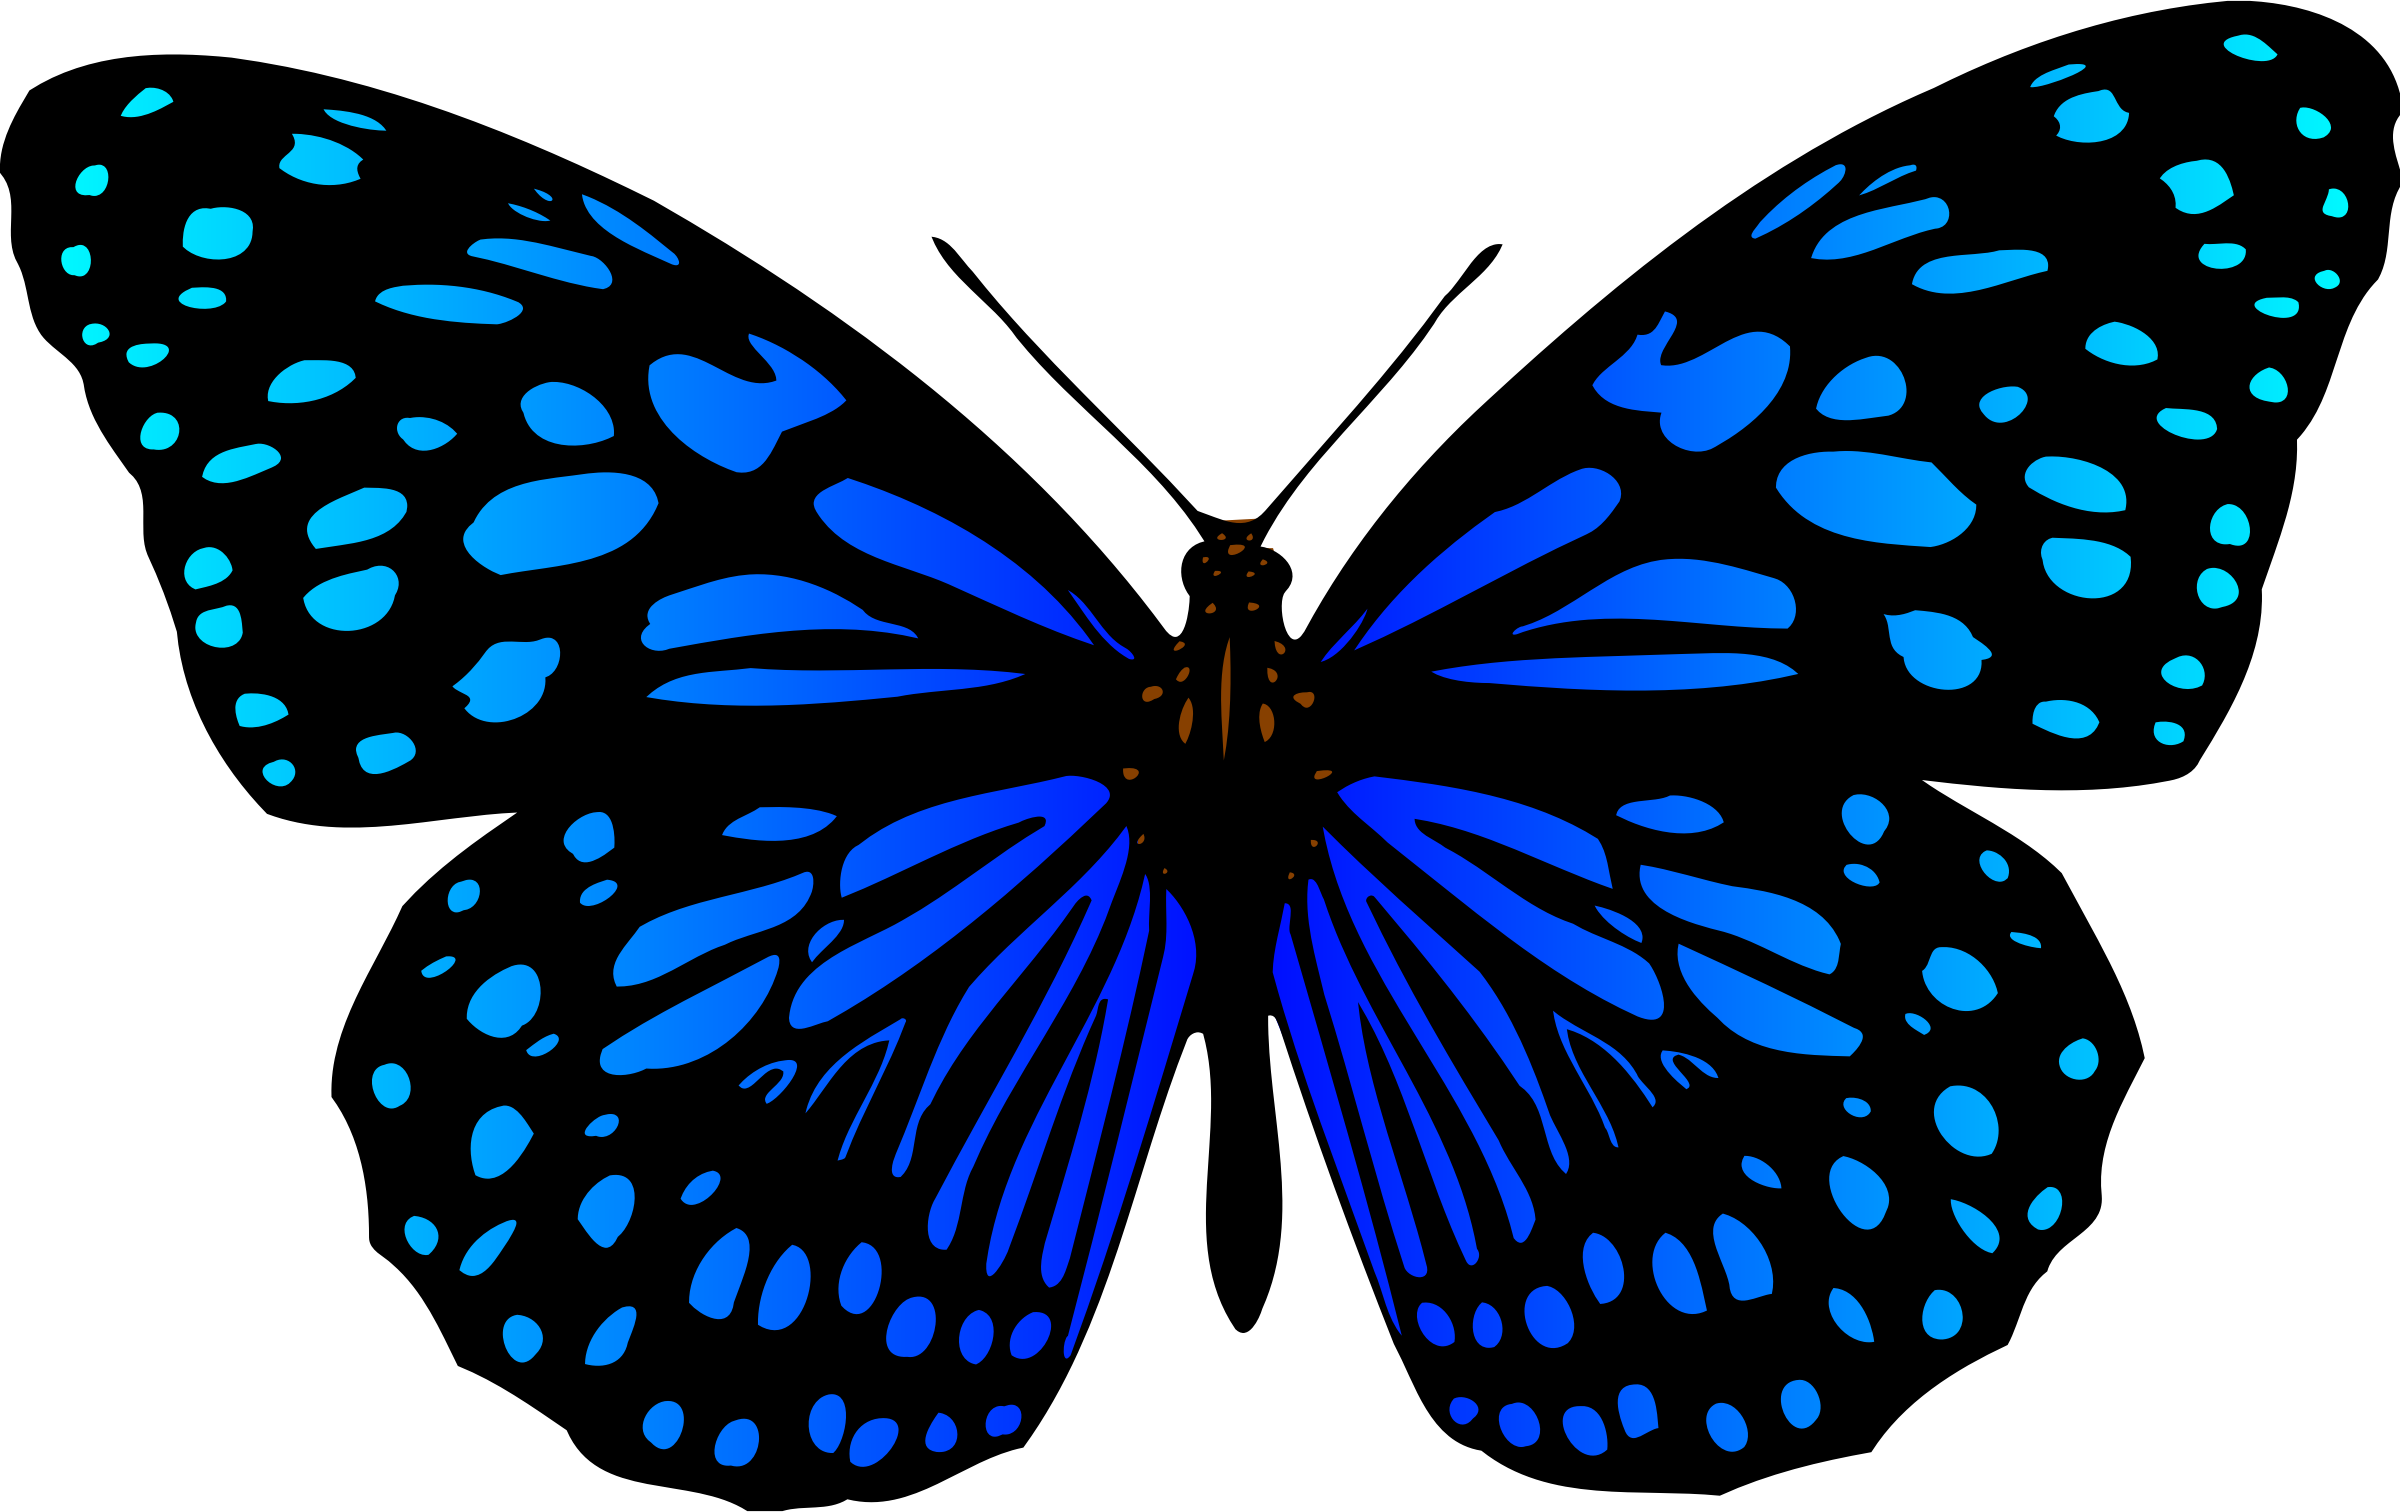 Butterfly 17 (colour 3) by Firkin